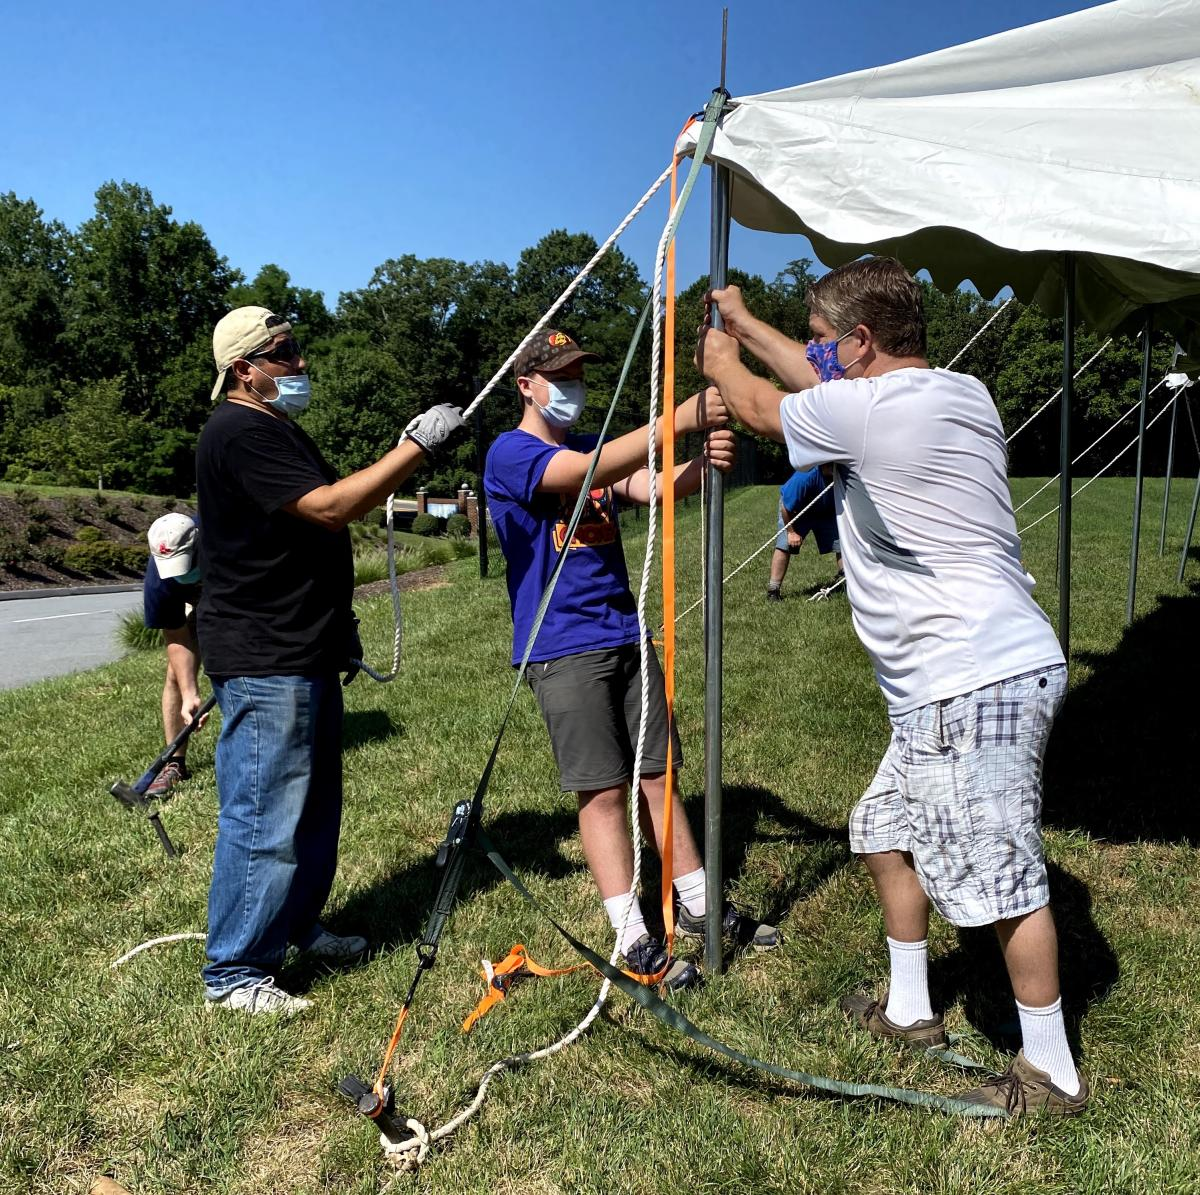 The Chesapeake Conference is lending campmeeting tents to Atholton Adventist Academy so they can hold some of their activities outside.